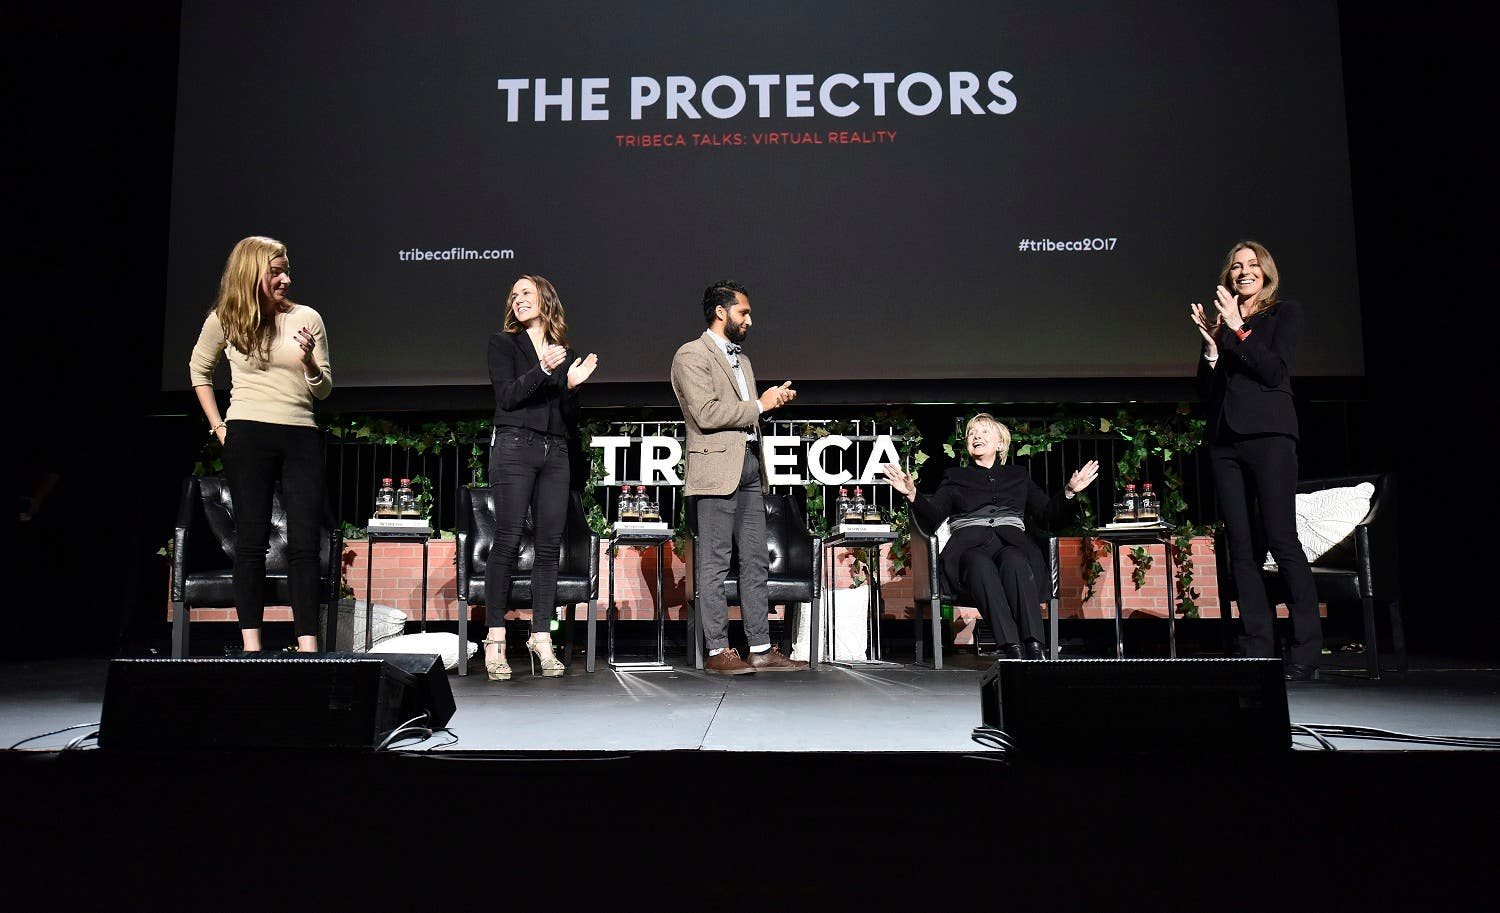 Hillary Clinton was an unannounced panelist at the Tribeca Film Festival, to discuss the scourge of elephant poaching - the subject of Kathryn Bigelow's eight-minute film. (AP)